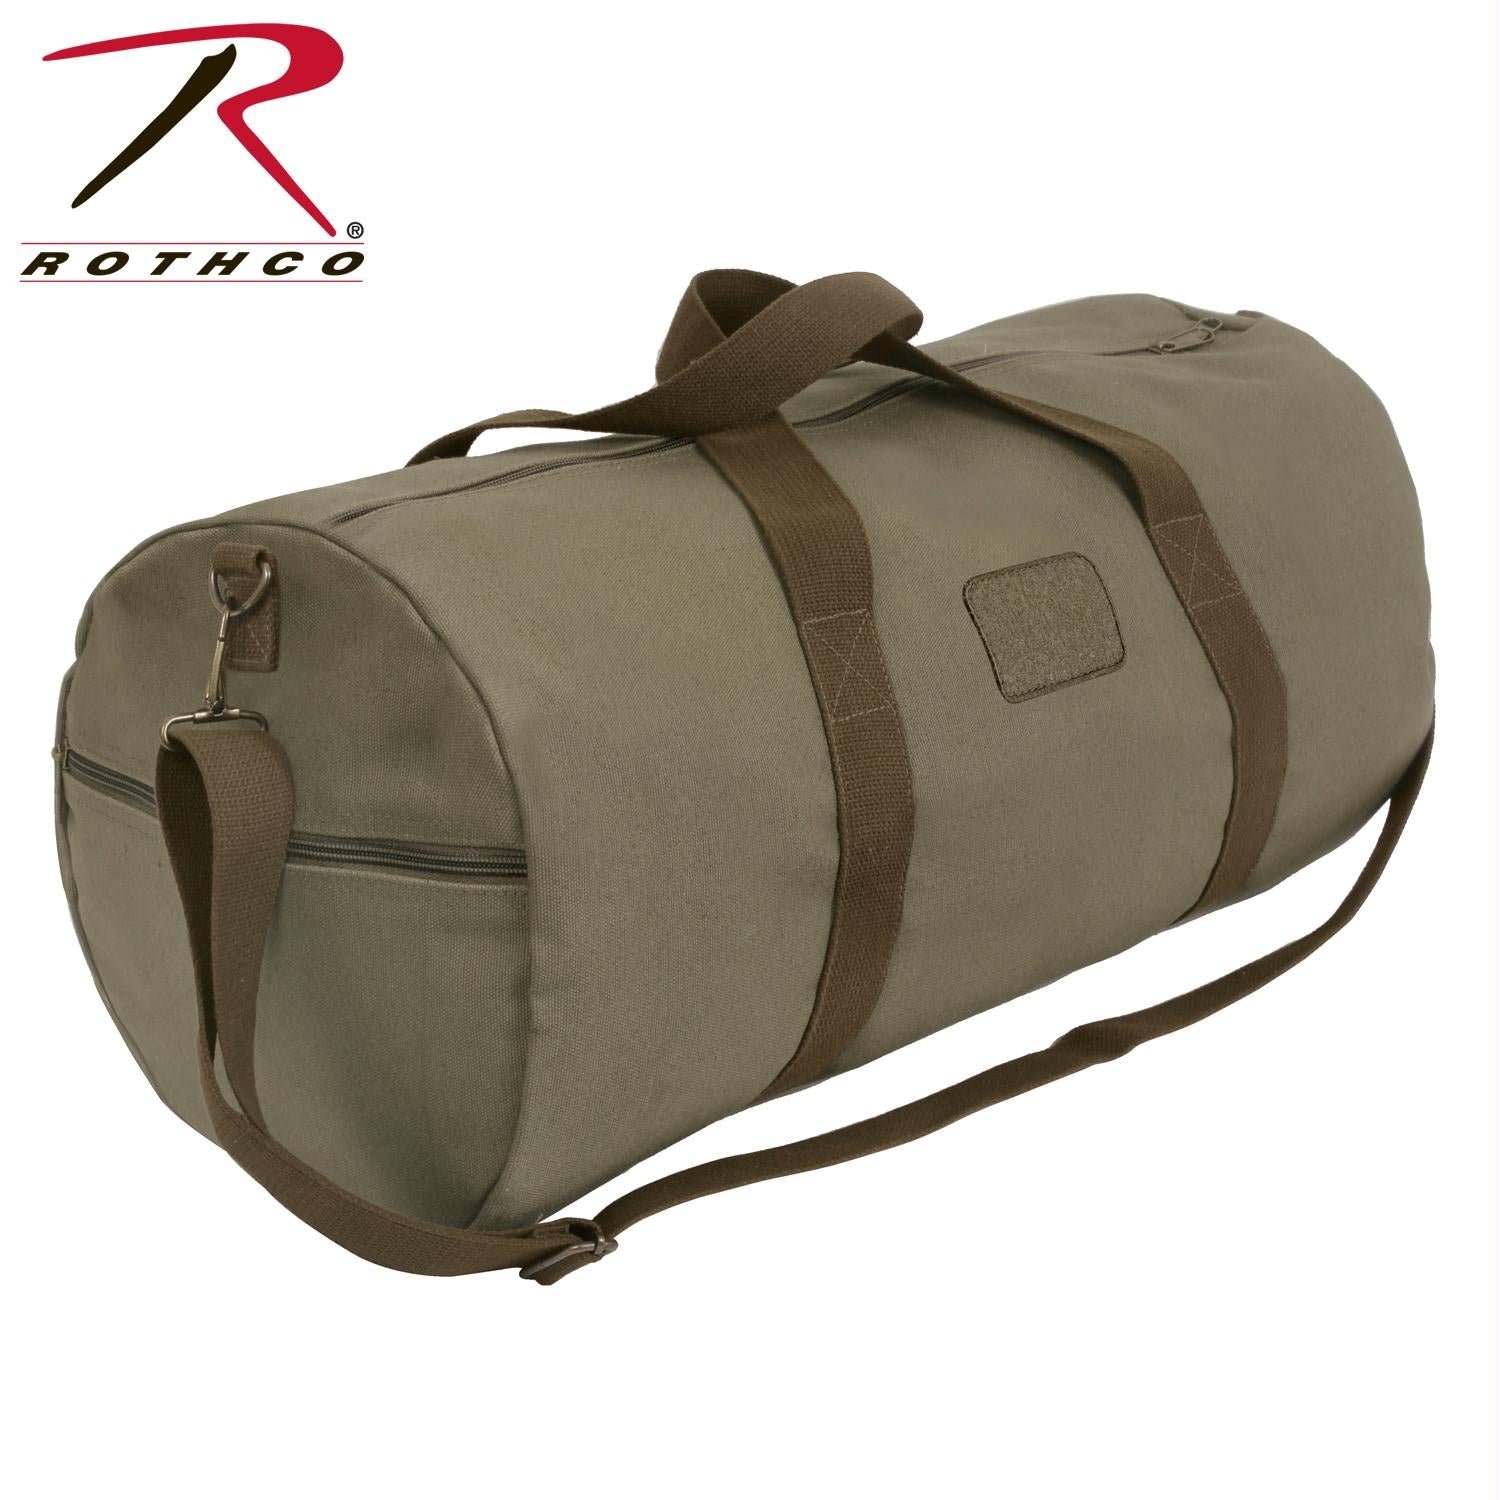 Rothco Two-Tone Shoulder Duffle With Loop Patch - Vintage Olive Drab / One Size